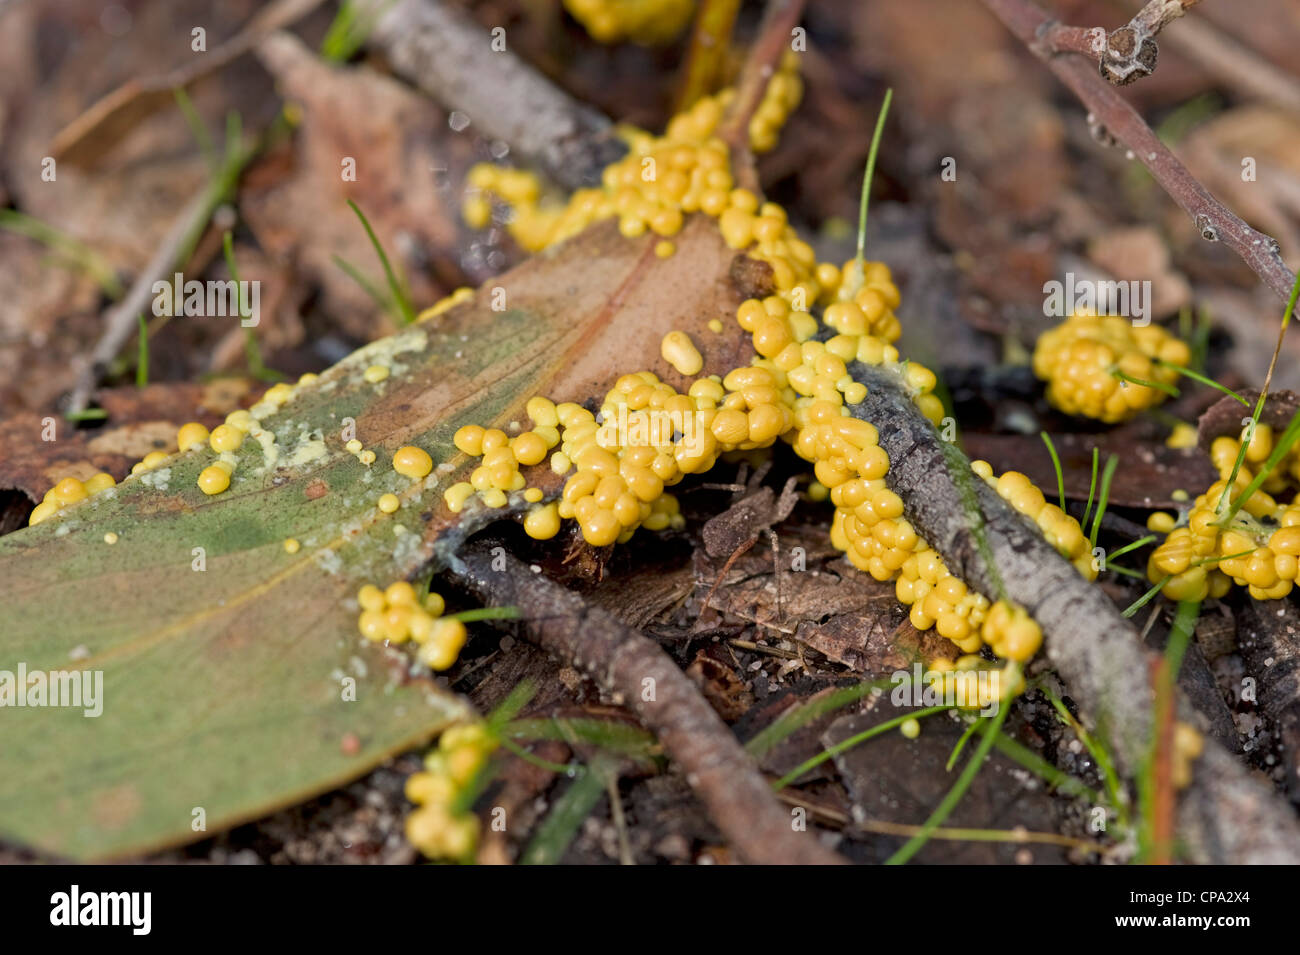 Yellow slime mould (mold) fruiting bodies - Stock Image